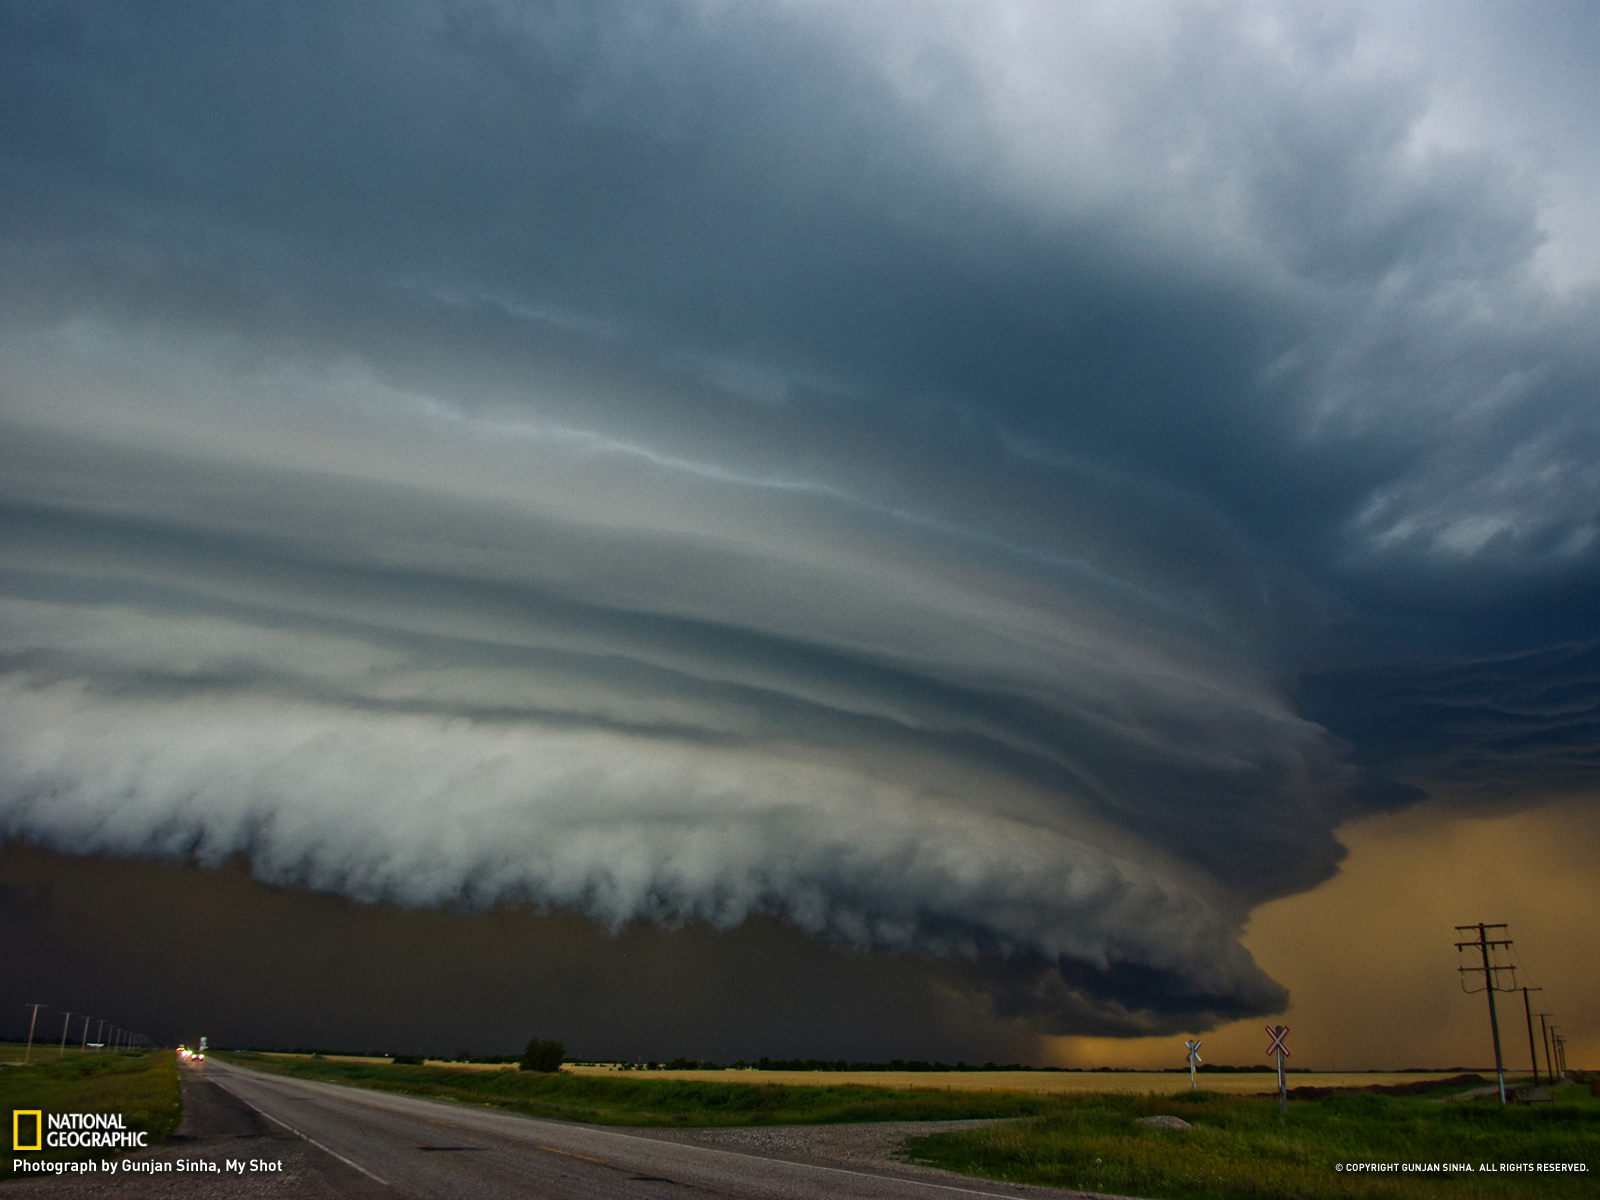 Shelf cloud, Shelf clouds, Shelf, amazing shelf cloud photo, best shelf cloud photo, Shelf Cloud over Saskatchewan, Canada on May 9, 2013